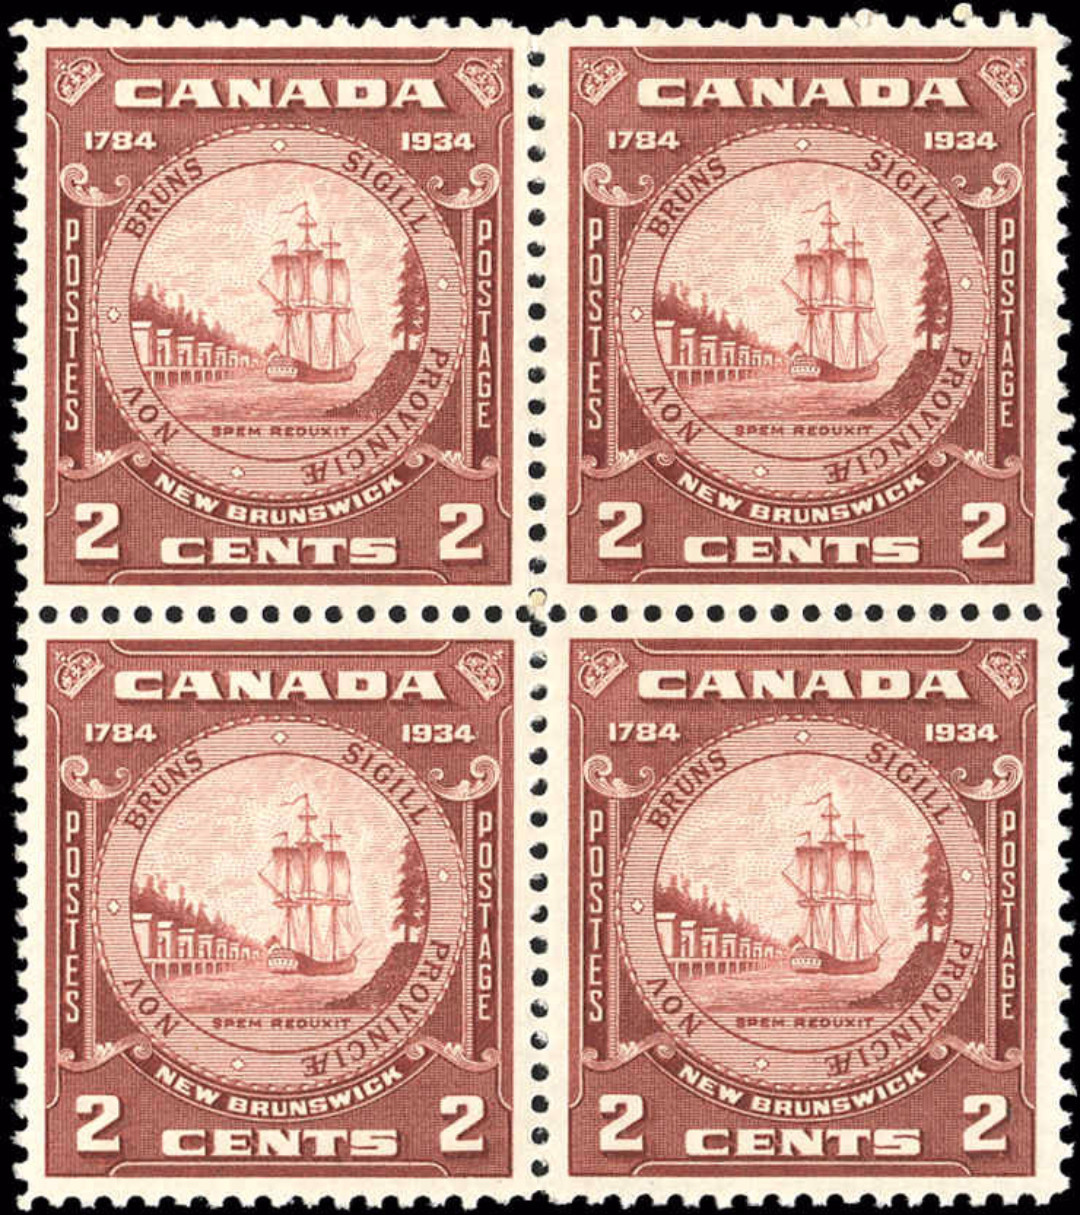 Canada #210, New Brunswick Issue, VF, M